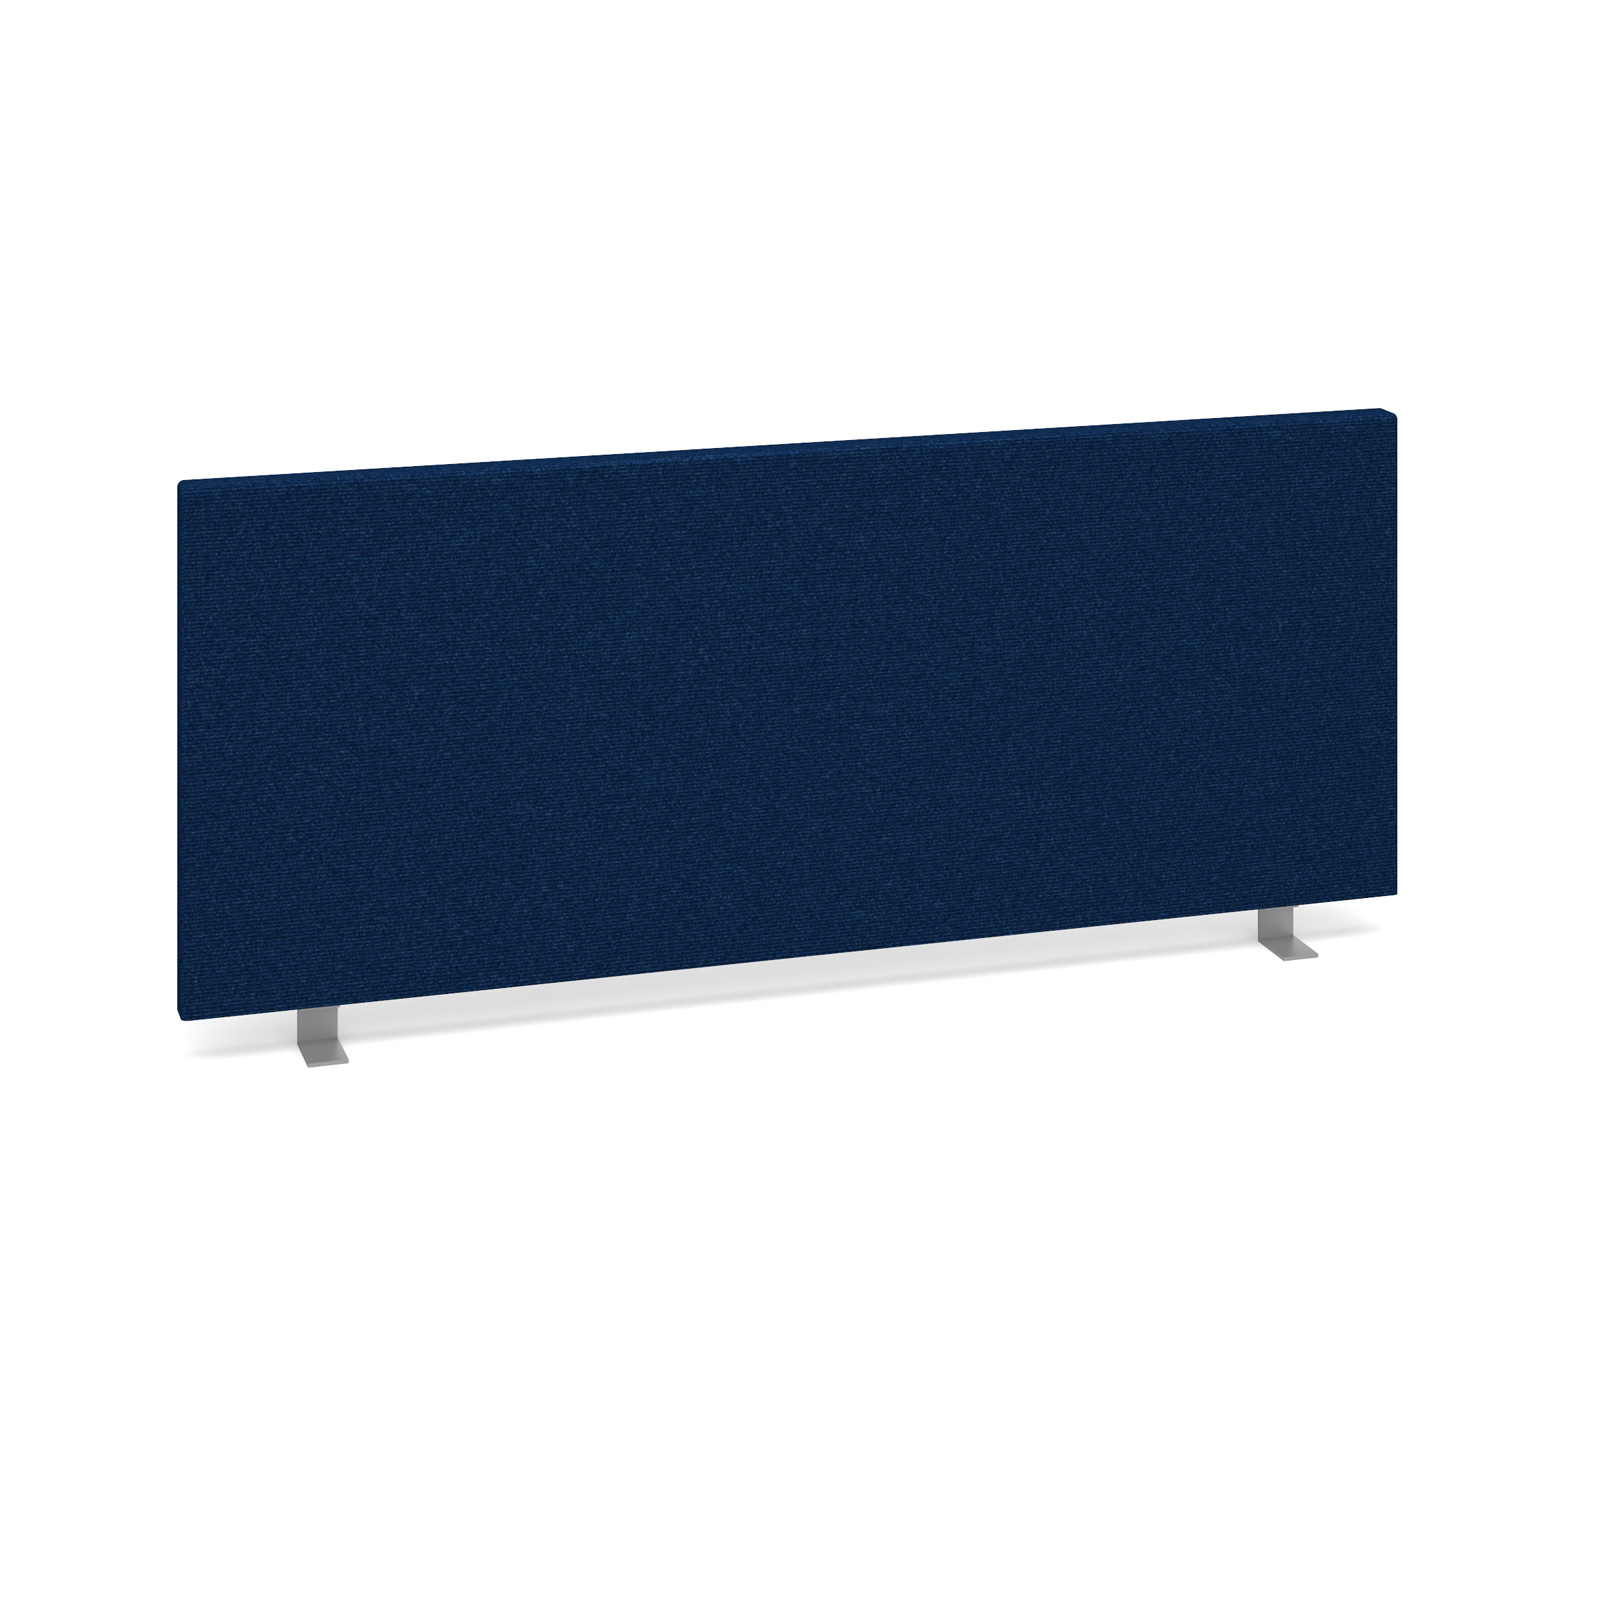 Straight Tops Straight desktop fabric screen 1000mm x 400mm - blue